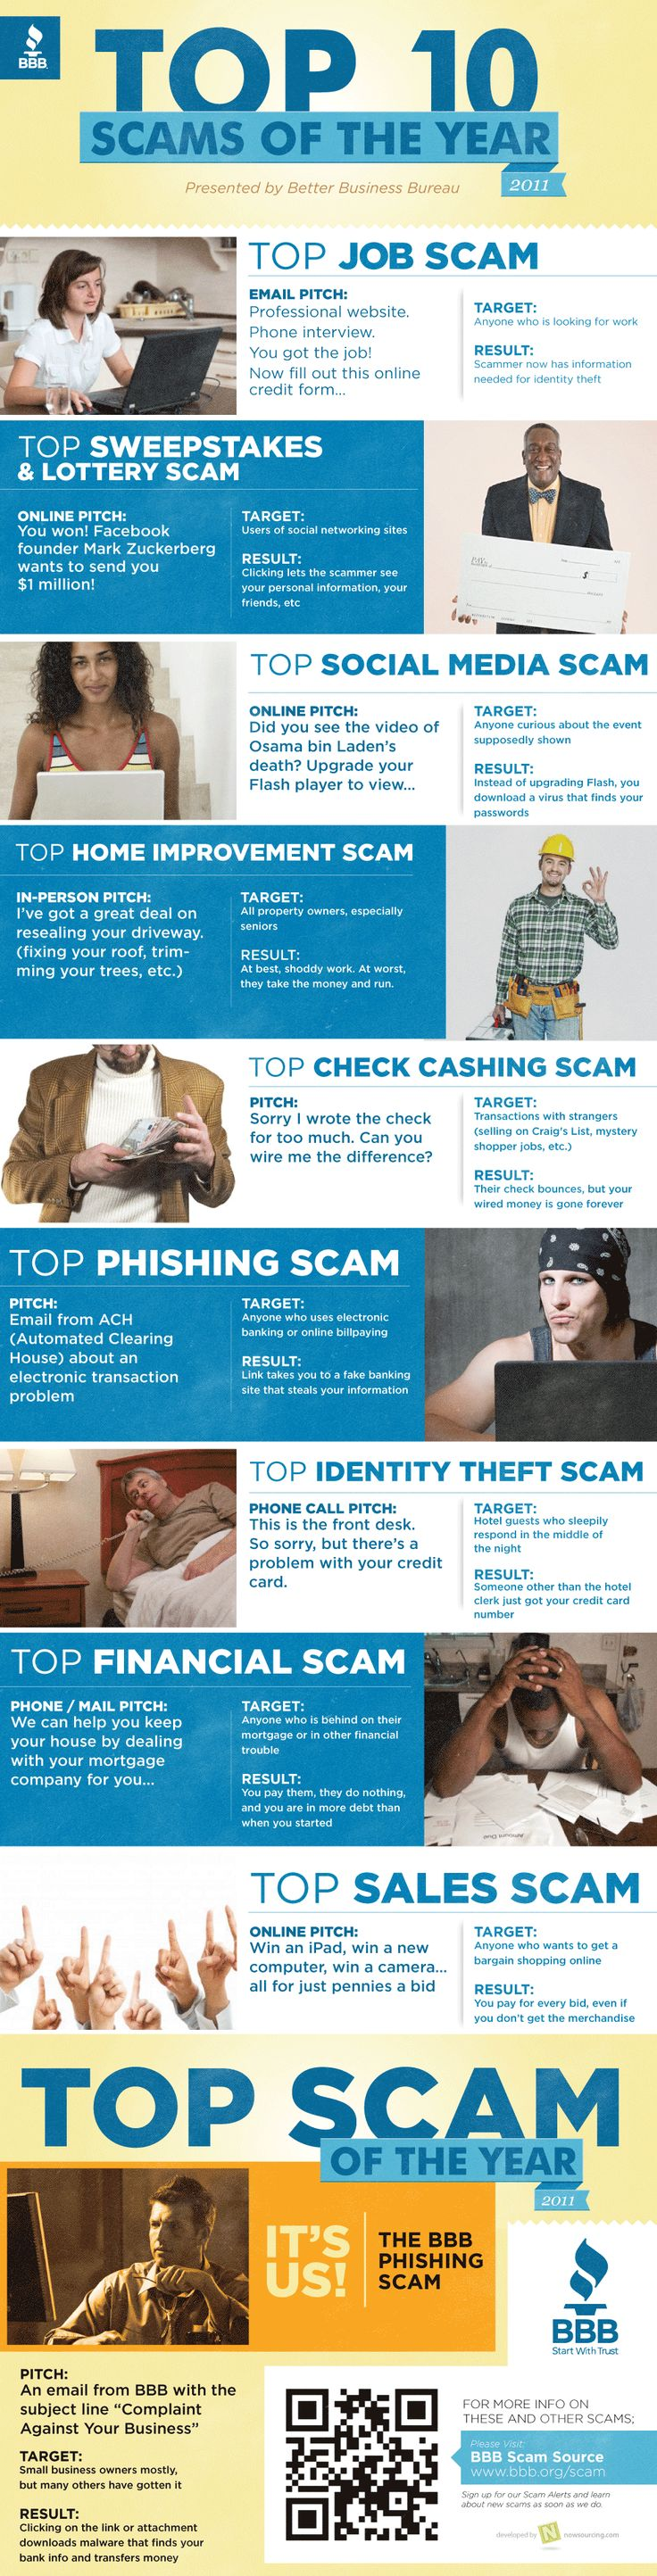 BBB Top 10 scams of 2011: Top 10, Tops, Year Infographic, Business Bureau, 10 Scams, Top10, Infographics